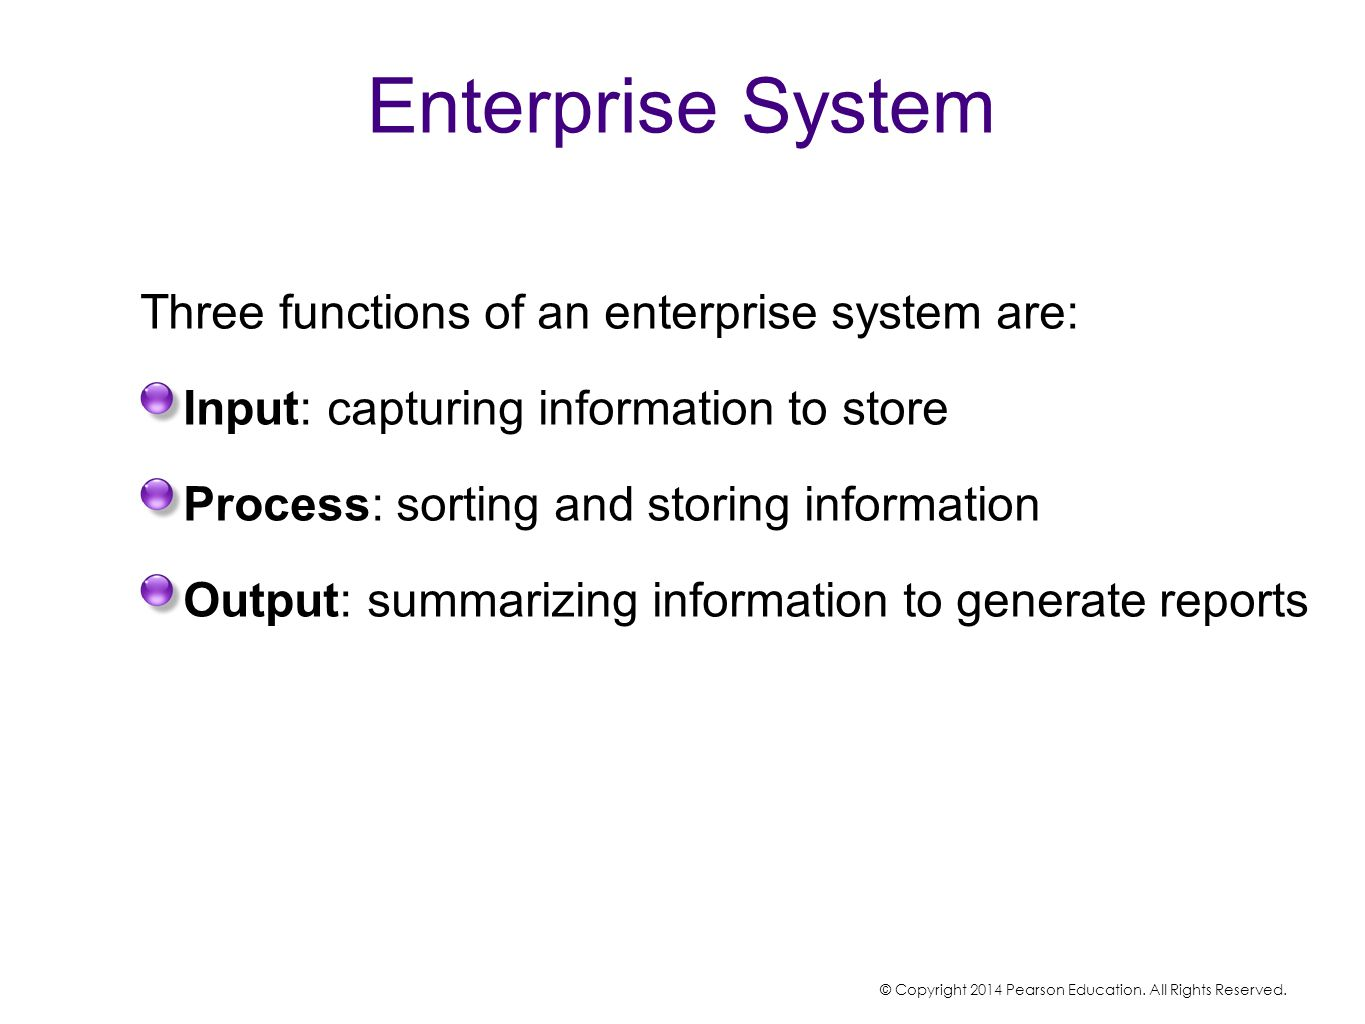 Enterprise System Three functions of an enterprise system are: Input: capturing information to store Process: sorting and storing information Output: